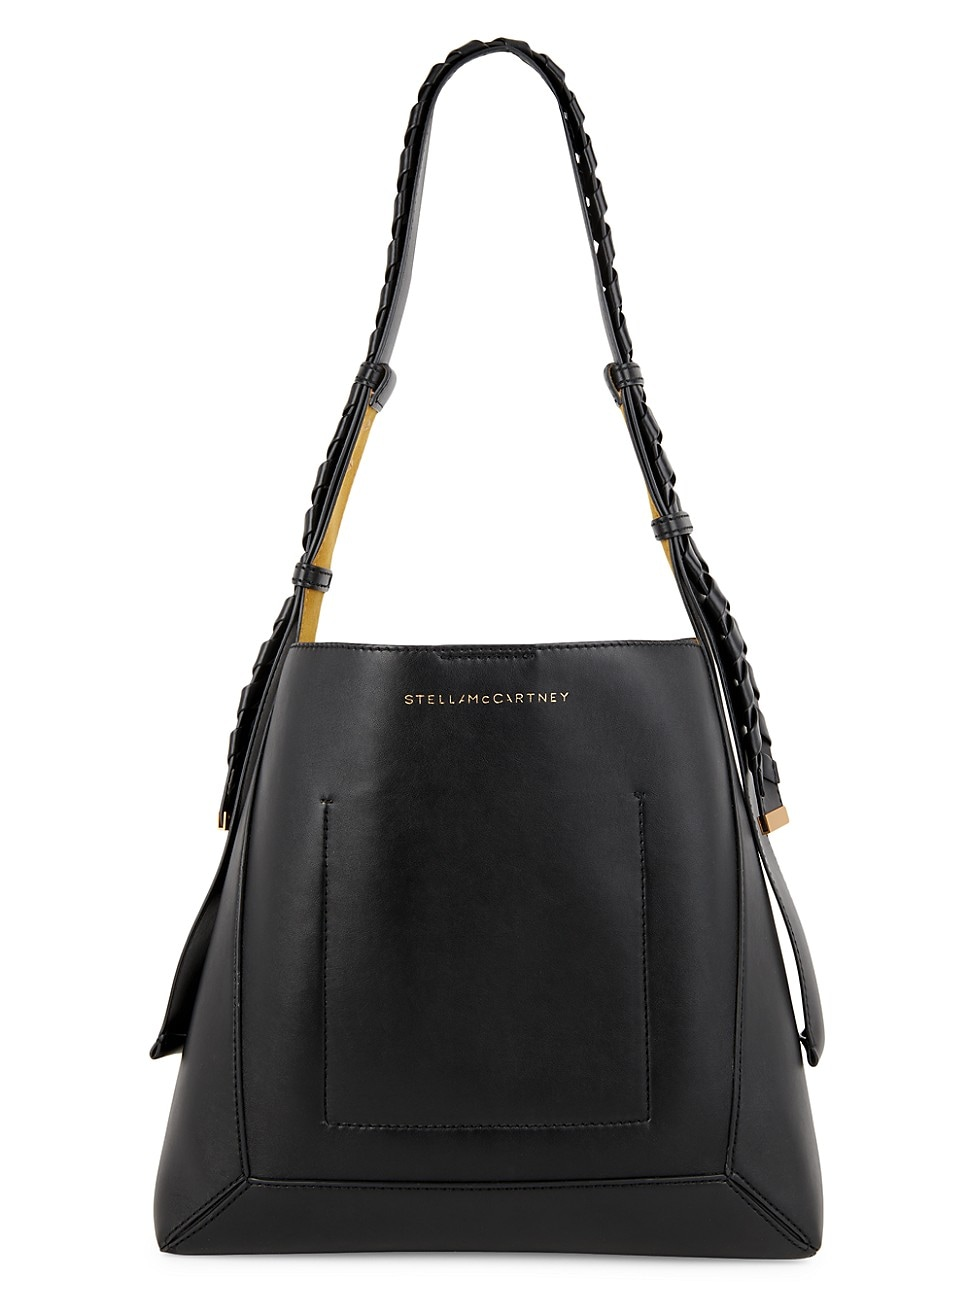 Stella Mccartney WOMEN'S MEDIUM BRAIDED HOBO BAG